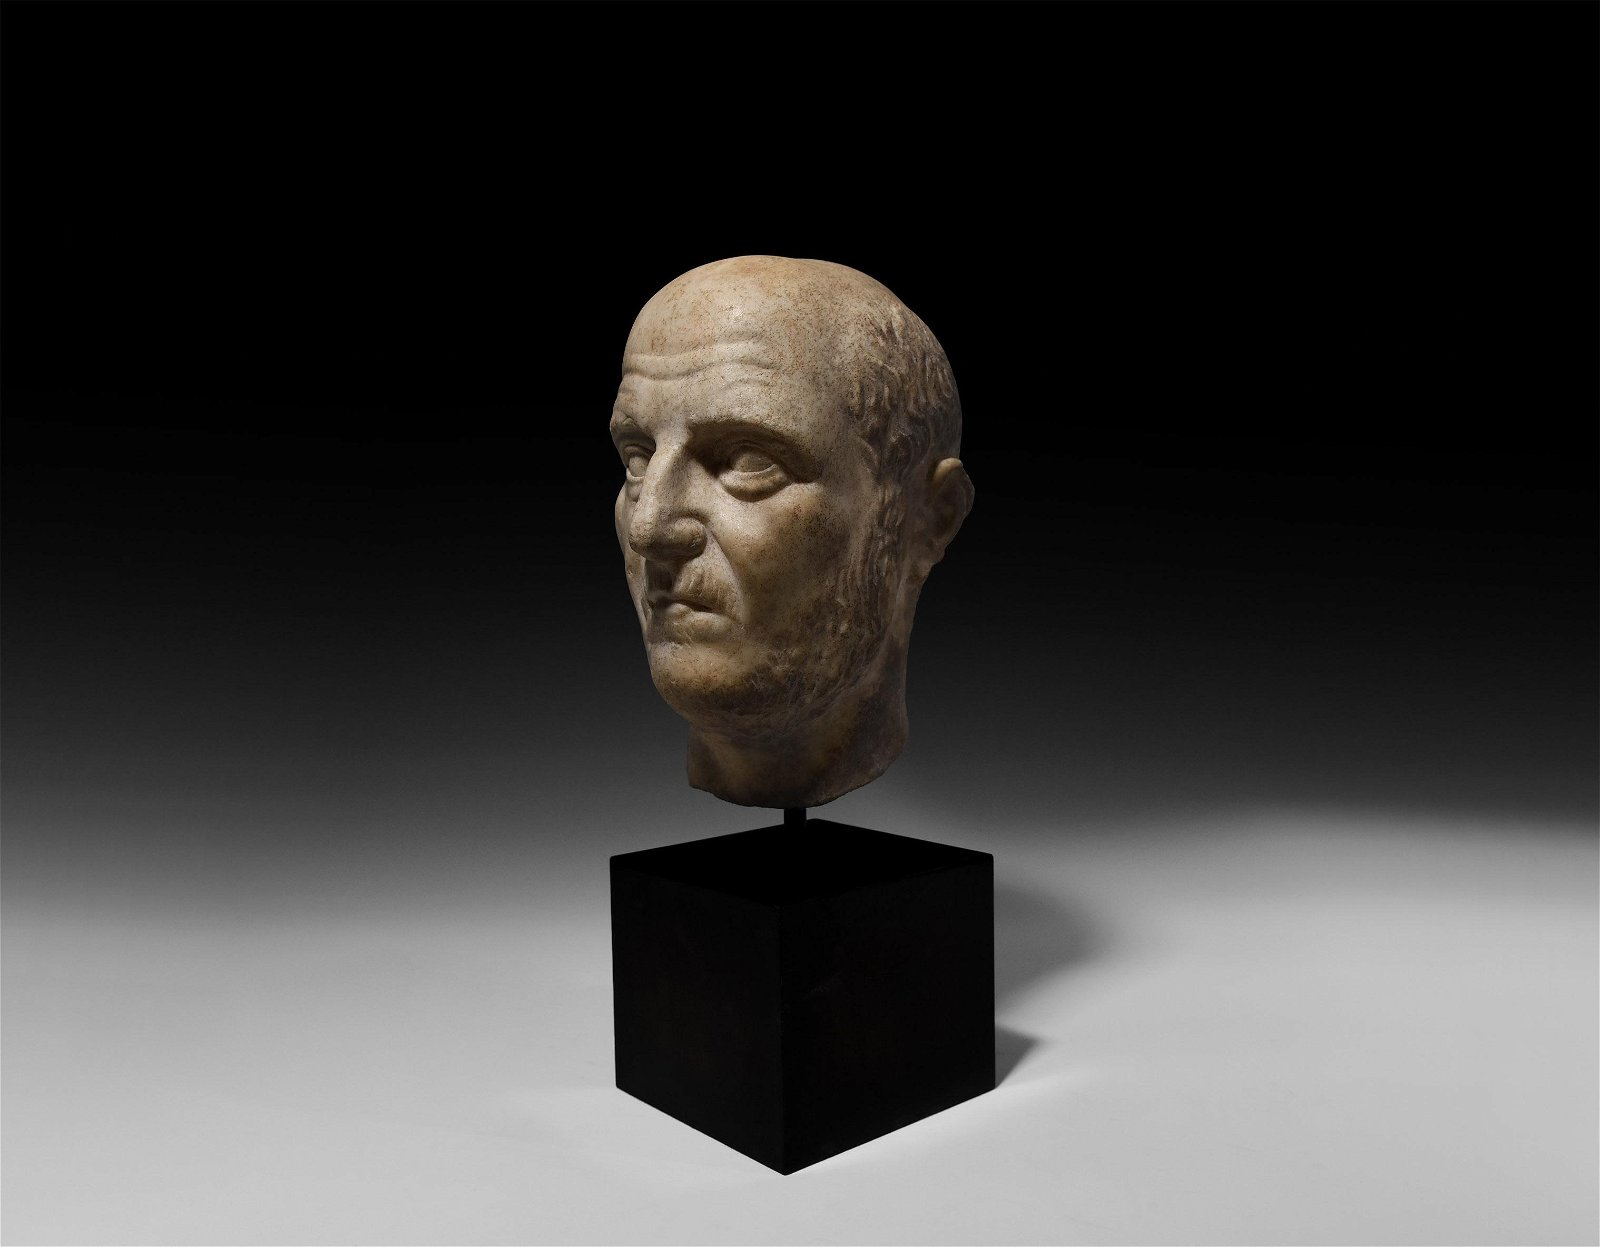 Roman Head of an Emperor or a Military Leader